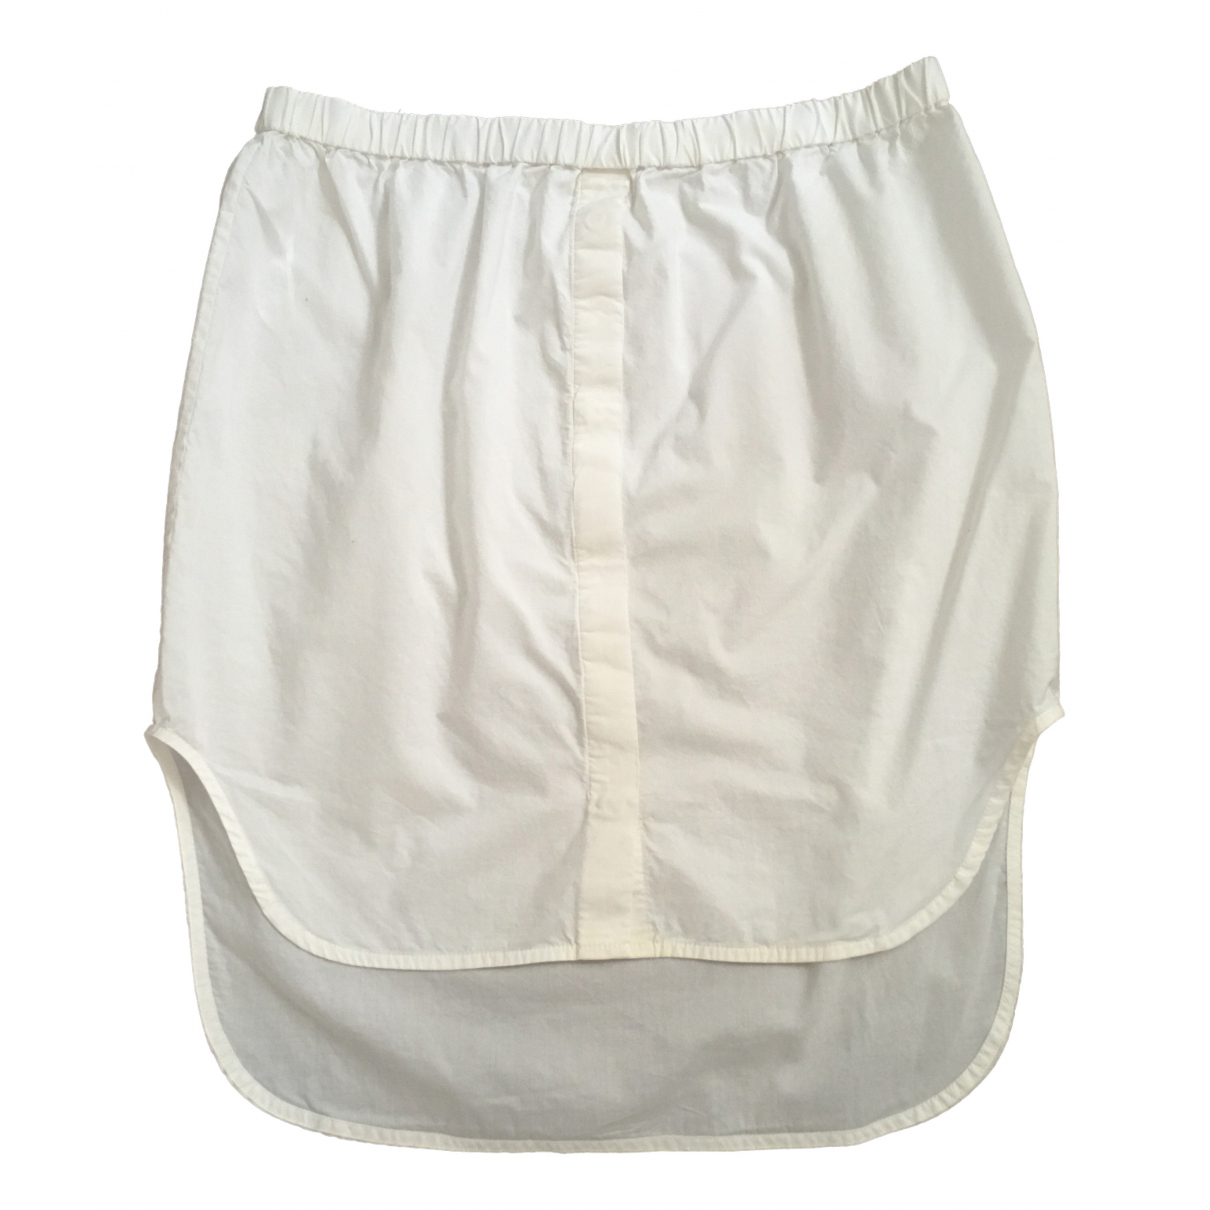 Chalayan \N White Cotton skirt for Women 44 FR